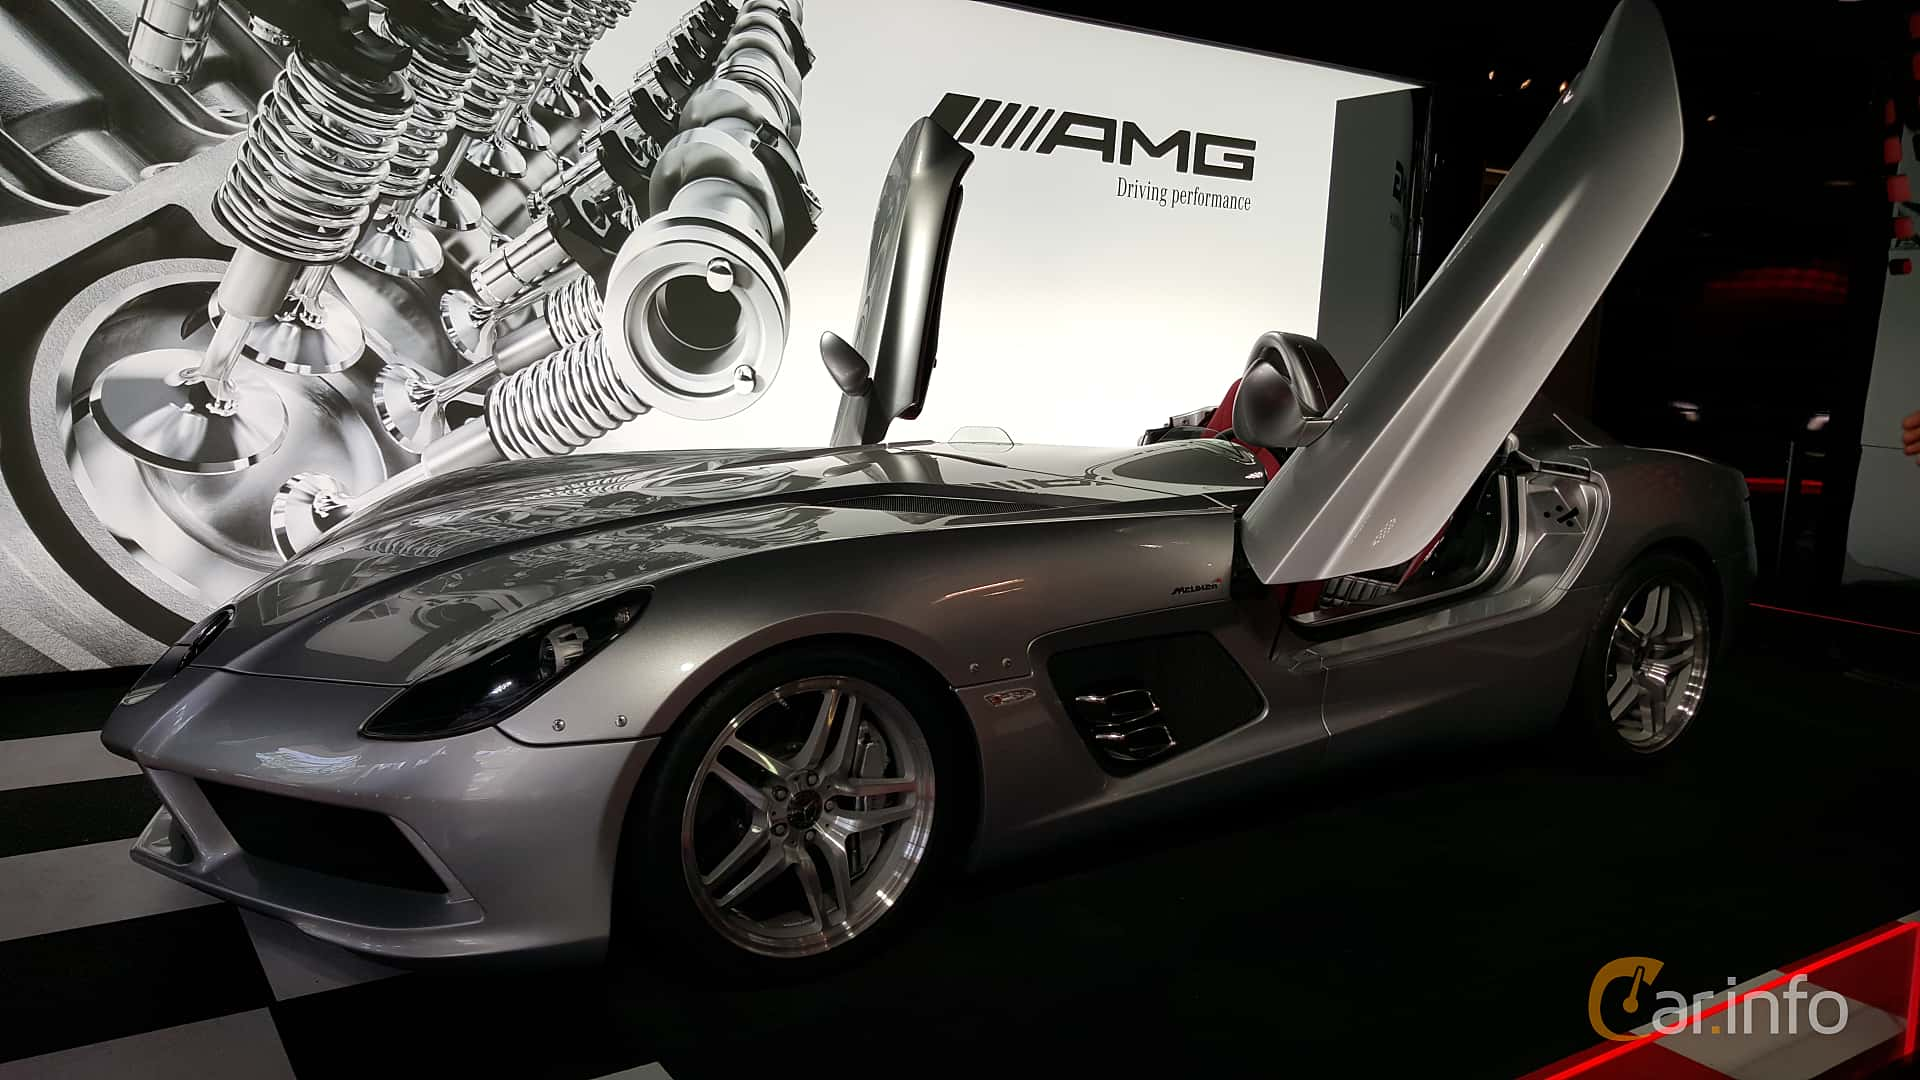 mercedes-benz slr stirling moss 199